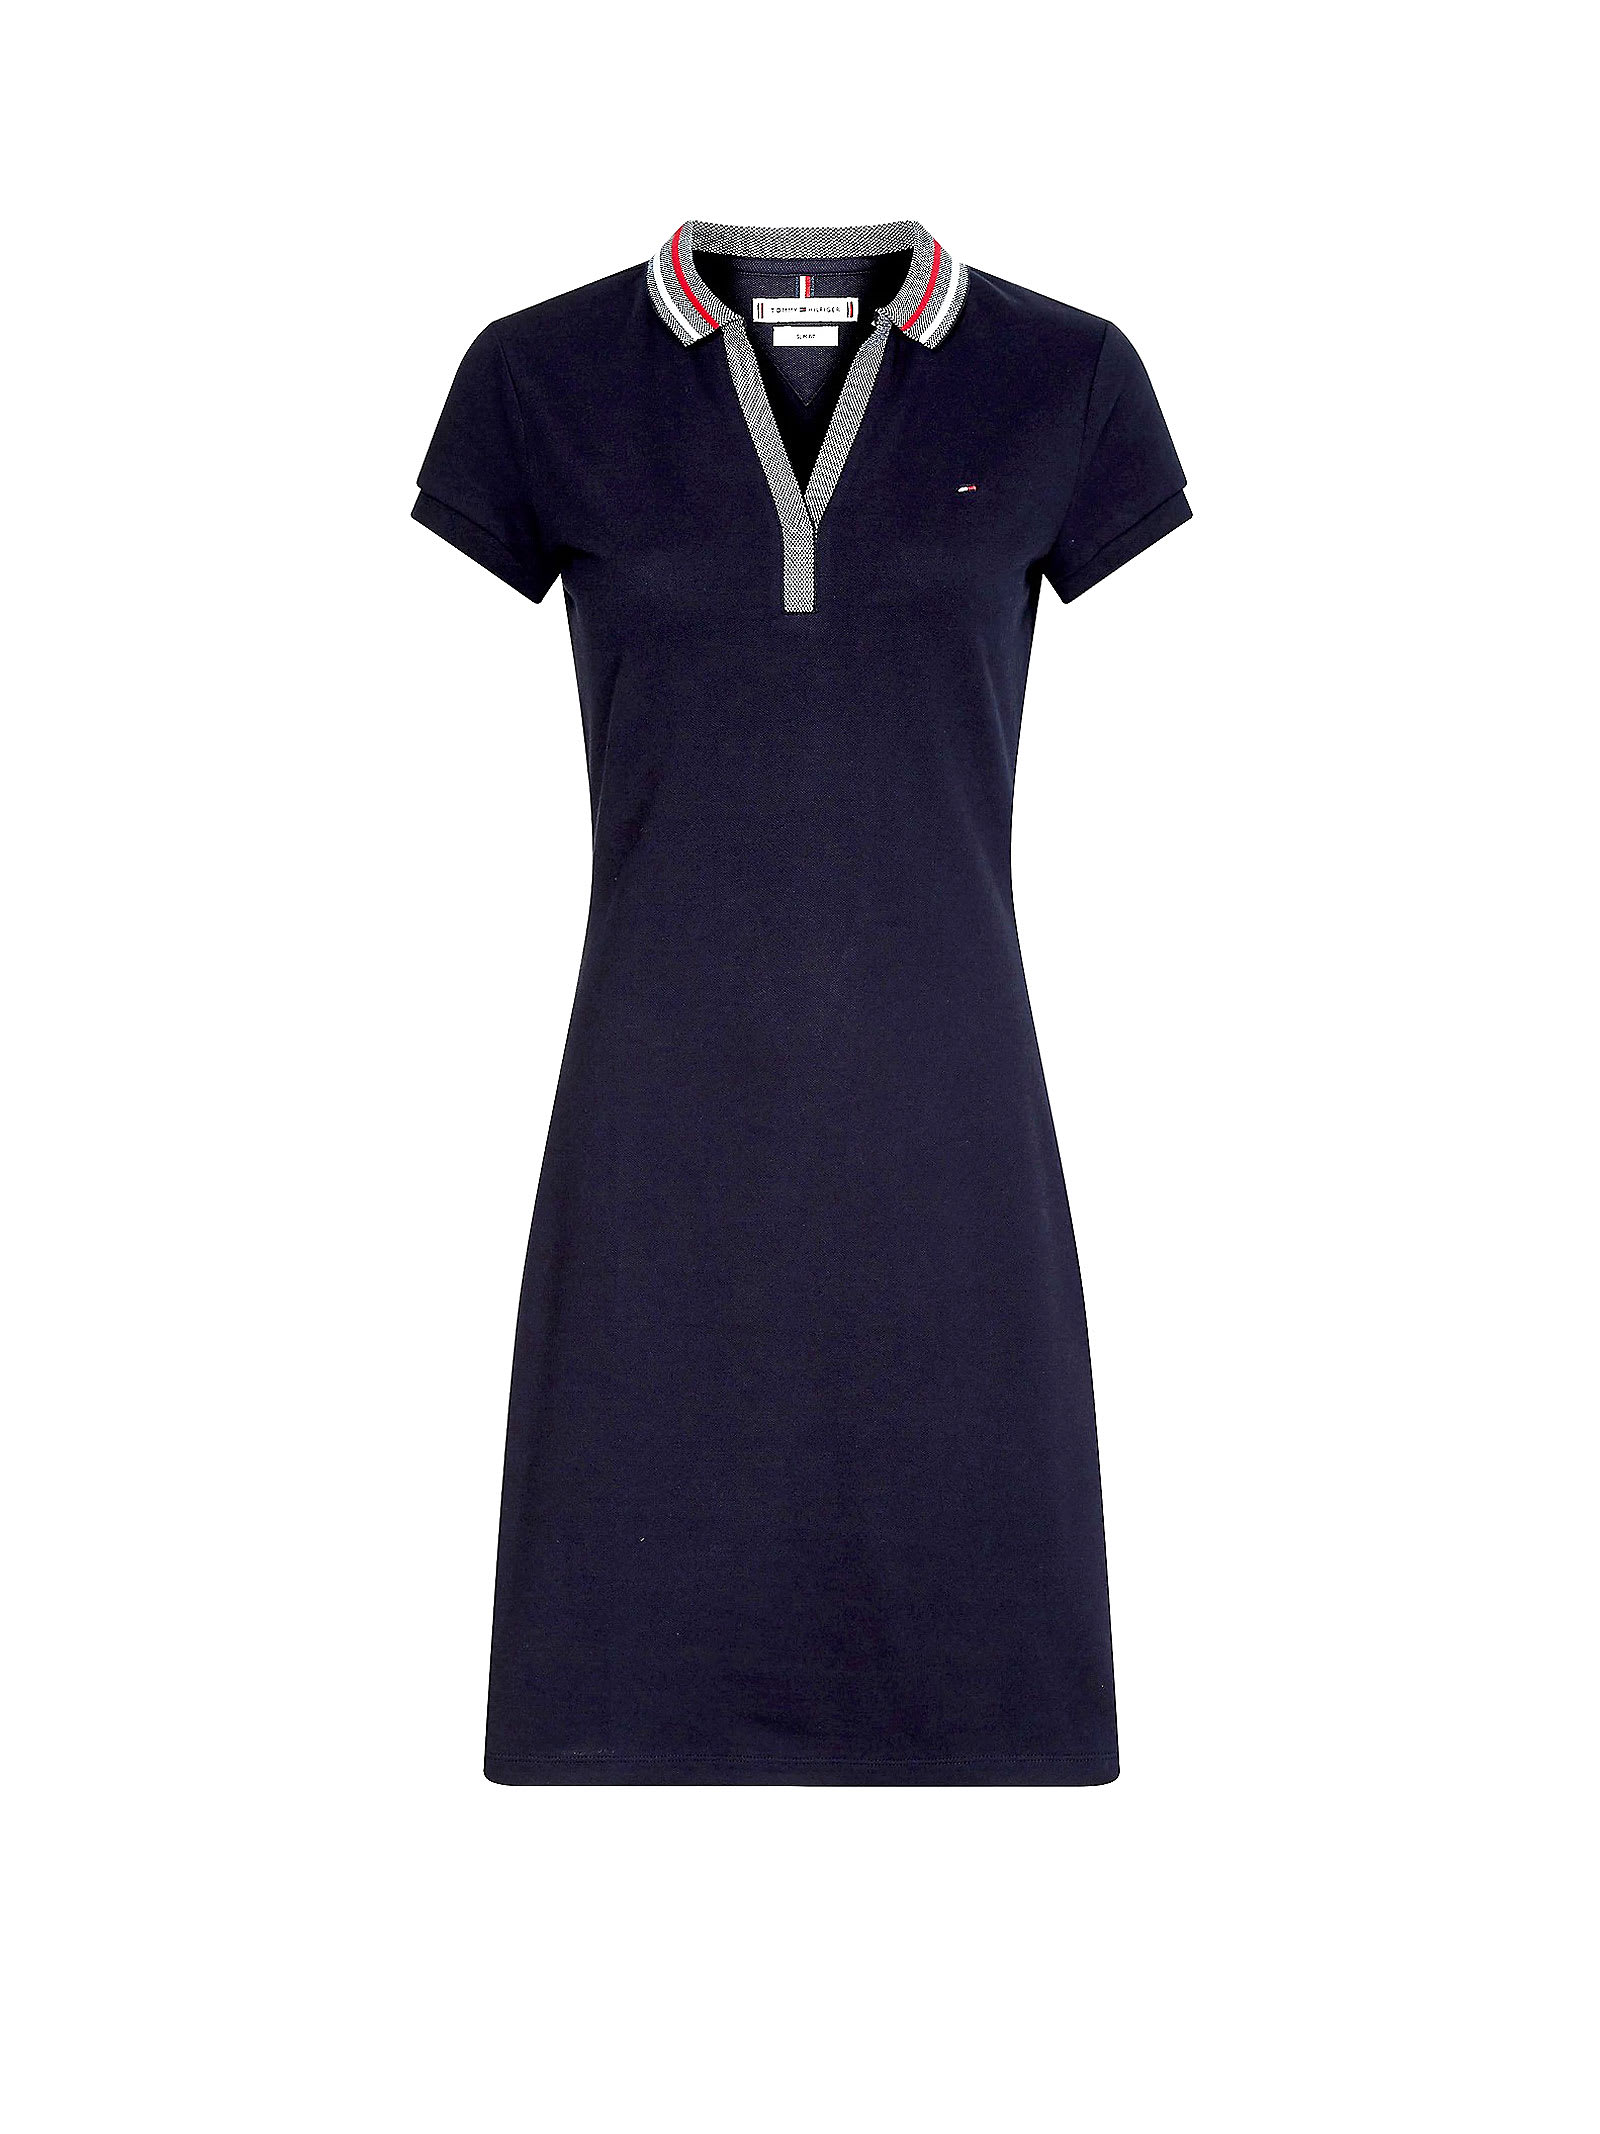 Buy Tommy Hilfiger Dress In Blue Cotton online, shop Tommy Hilfiger with free shipping